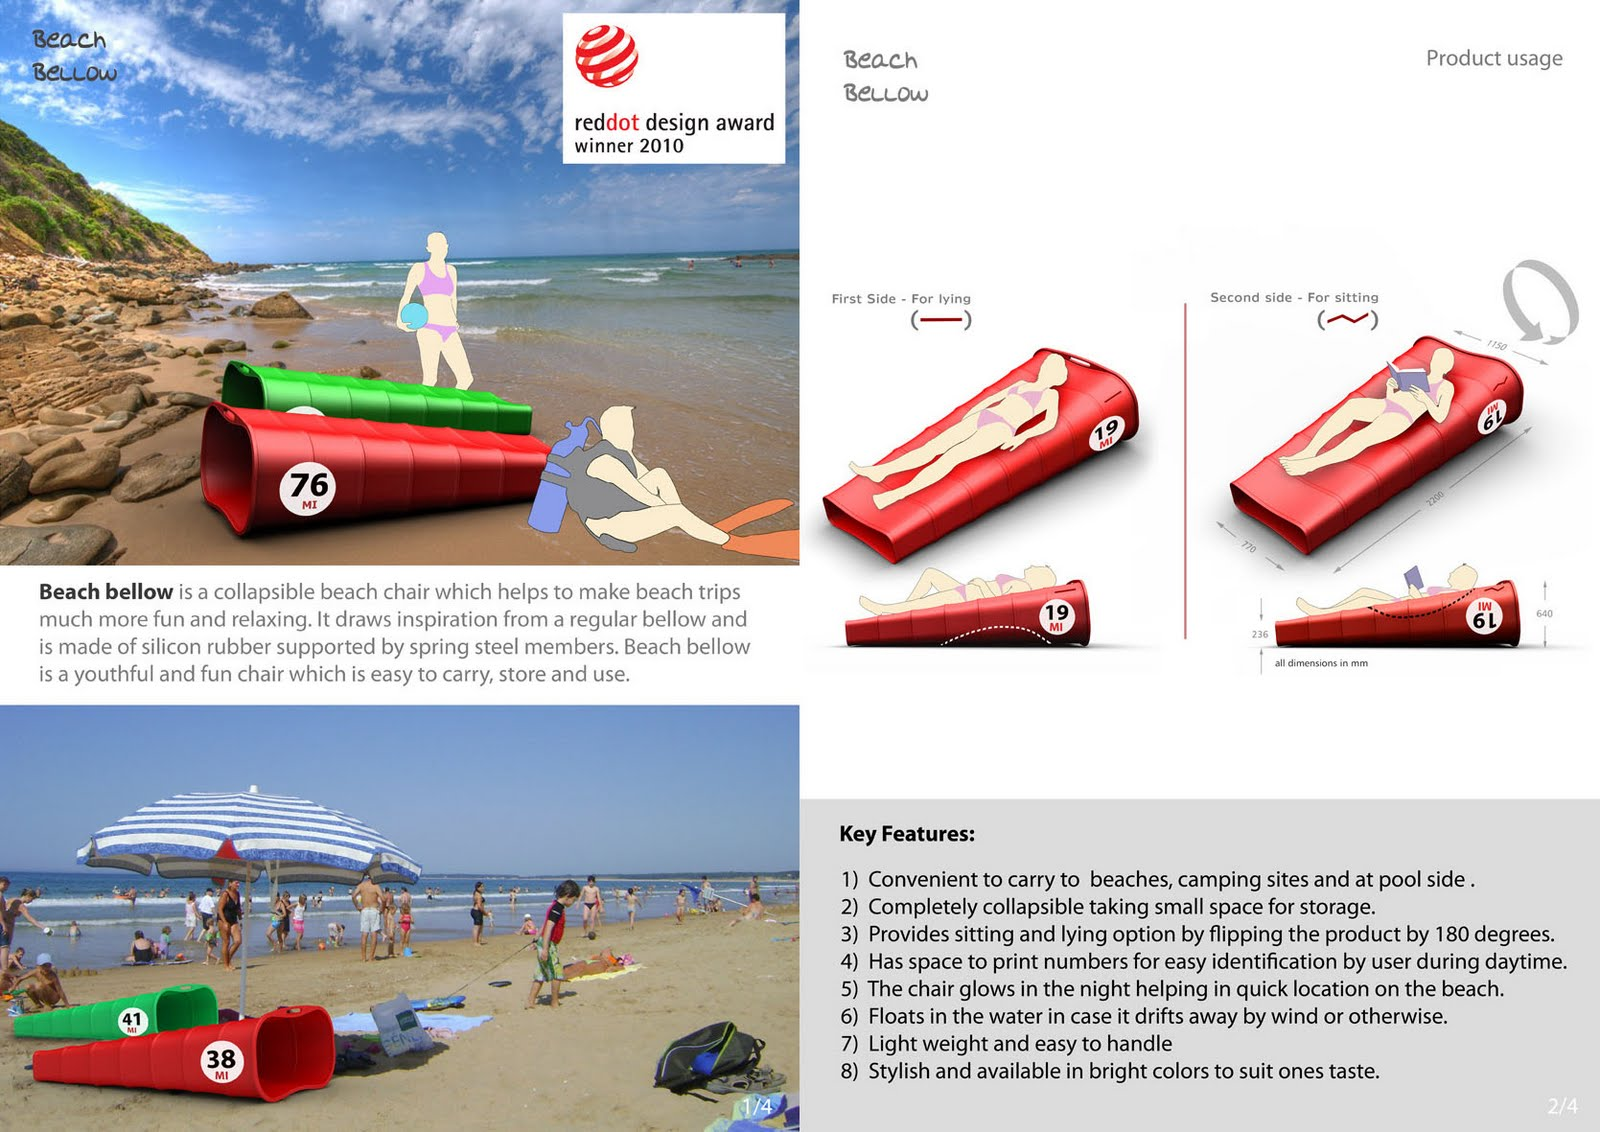 "EPICENTER DESIGN ""Beach Bellow"" wins the Red dot concept award 2010"